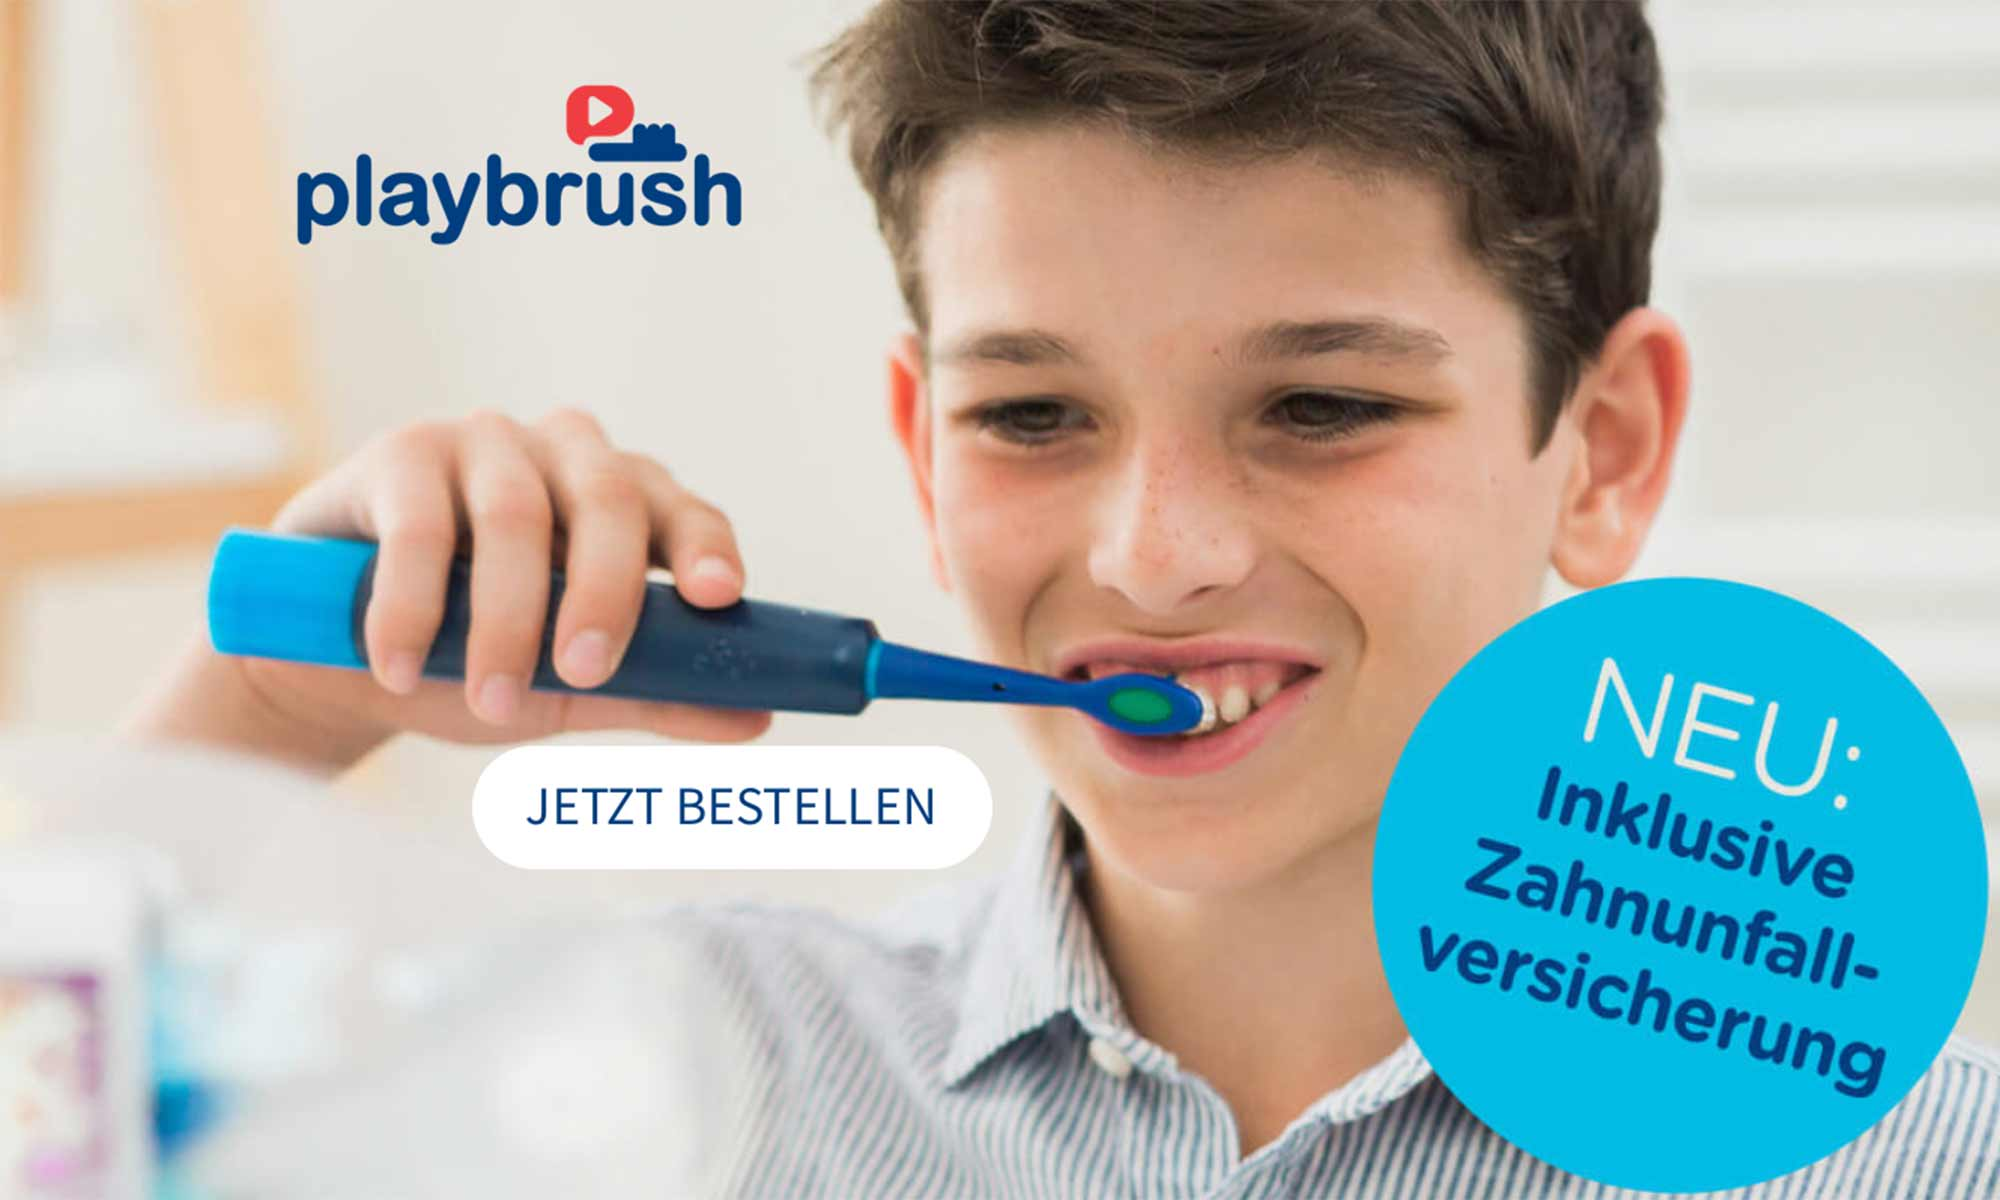 dental accident insurance for Paybrush subscription customers